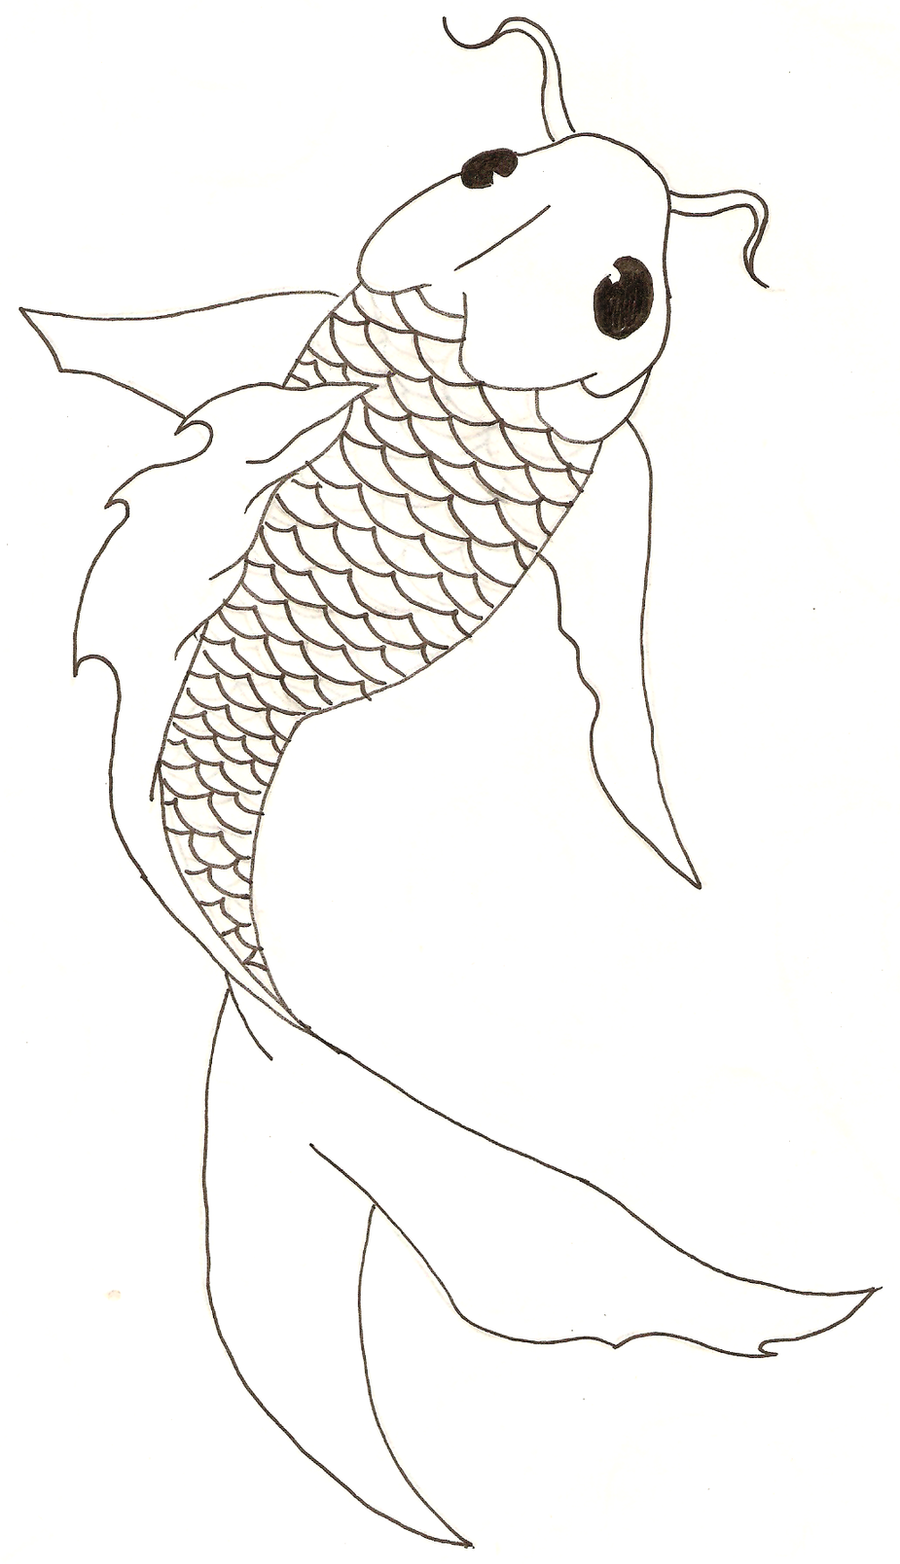 Simple Fish Line Art : Koi fish free lineart by titovn on deviantart